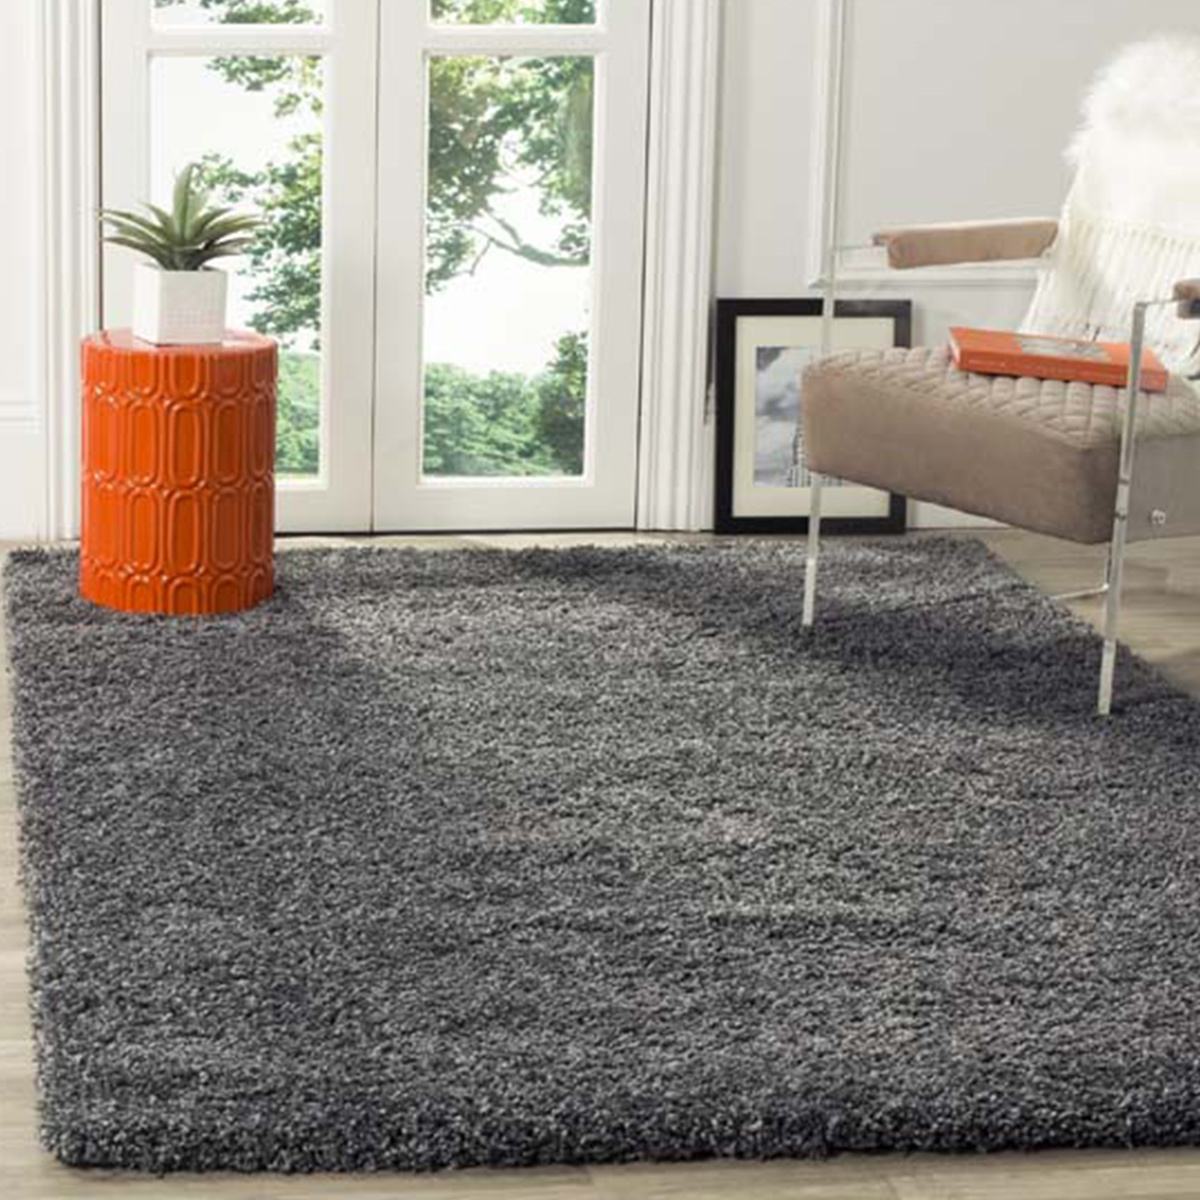 Dark gray shag rug that is resilient in high-traffic areas. photo